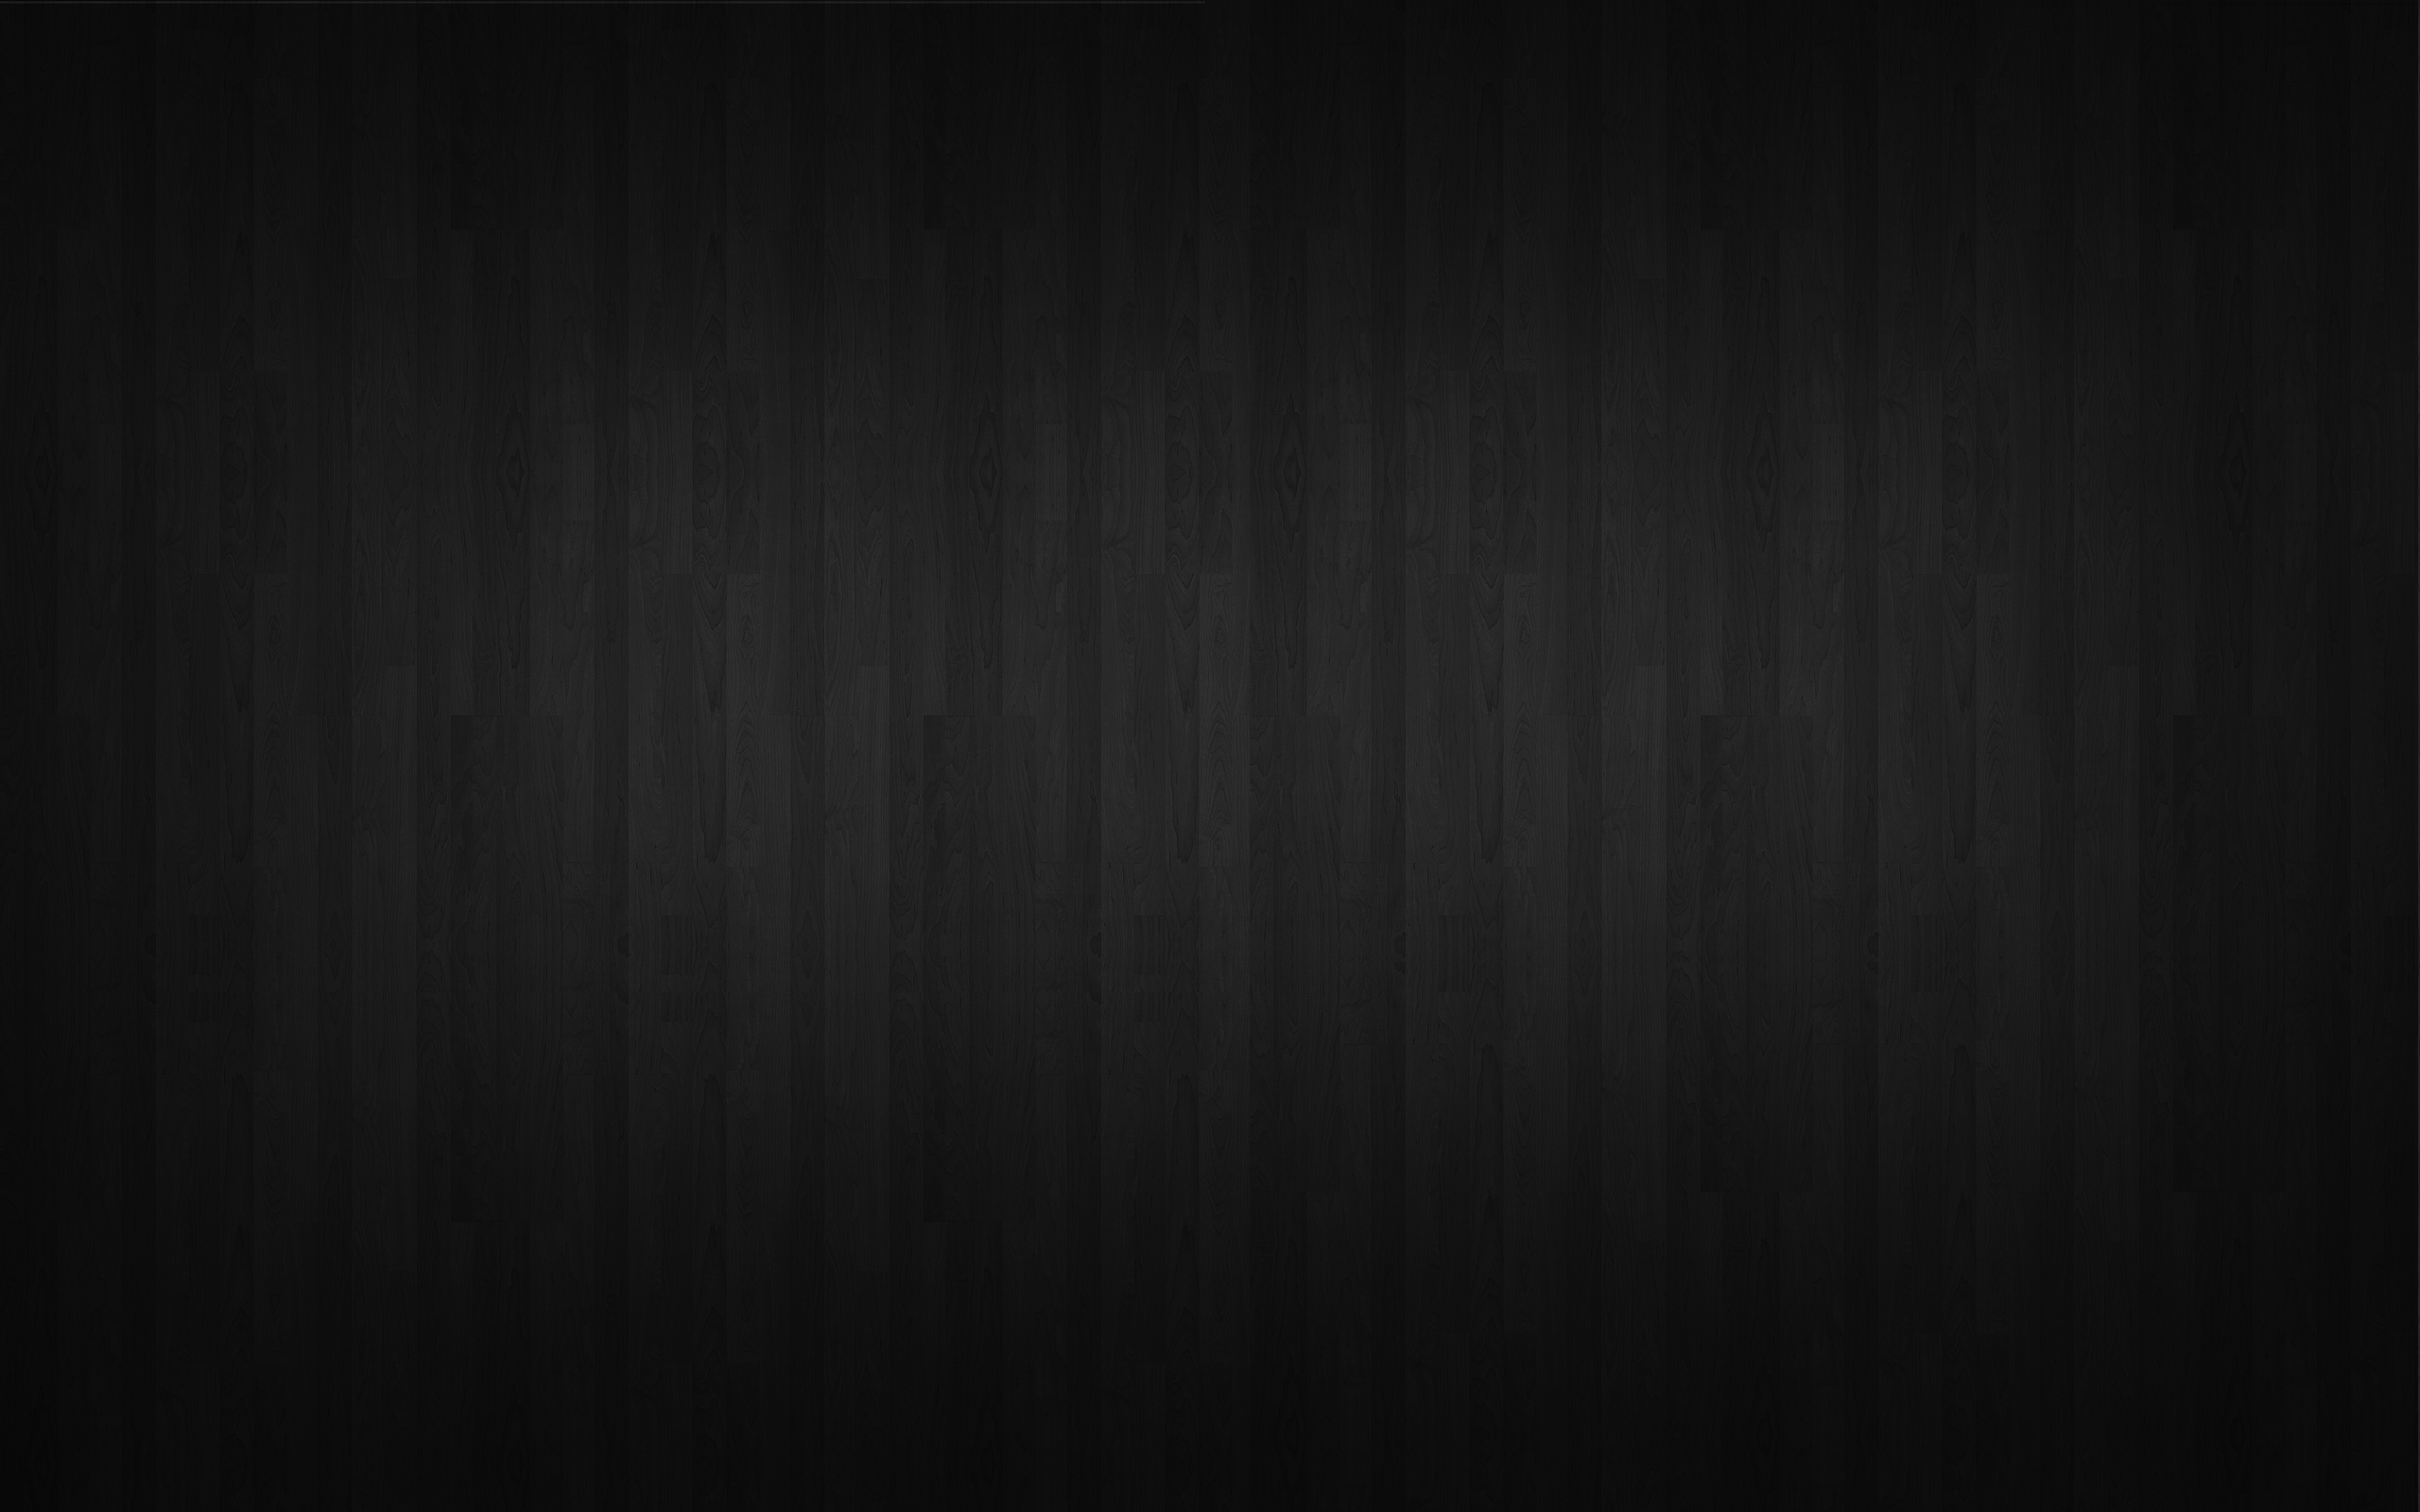 Wallpapers Black Wood 2560x1600